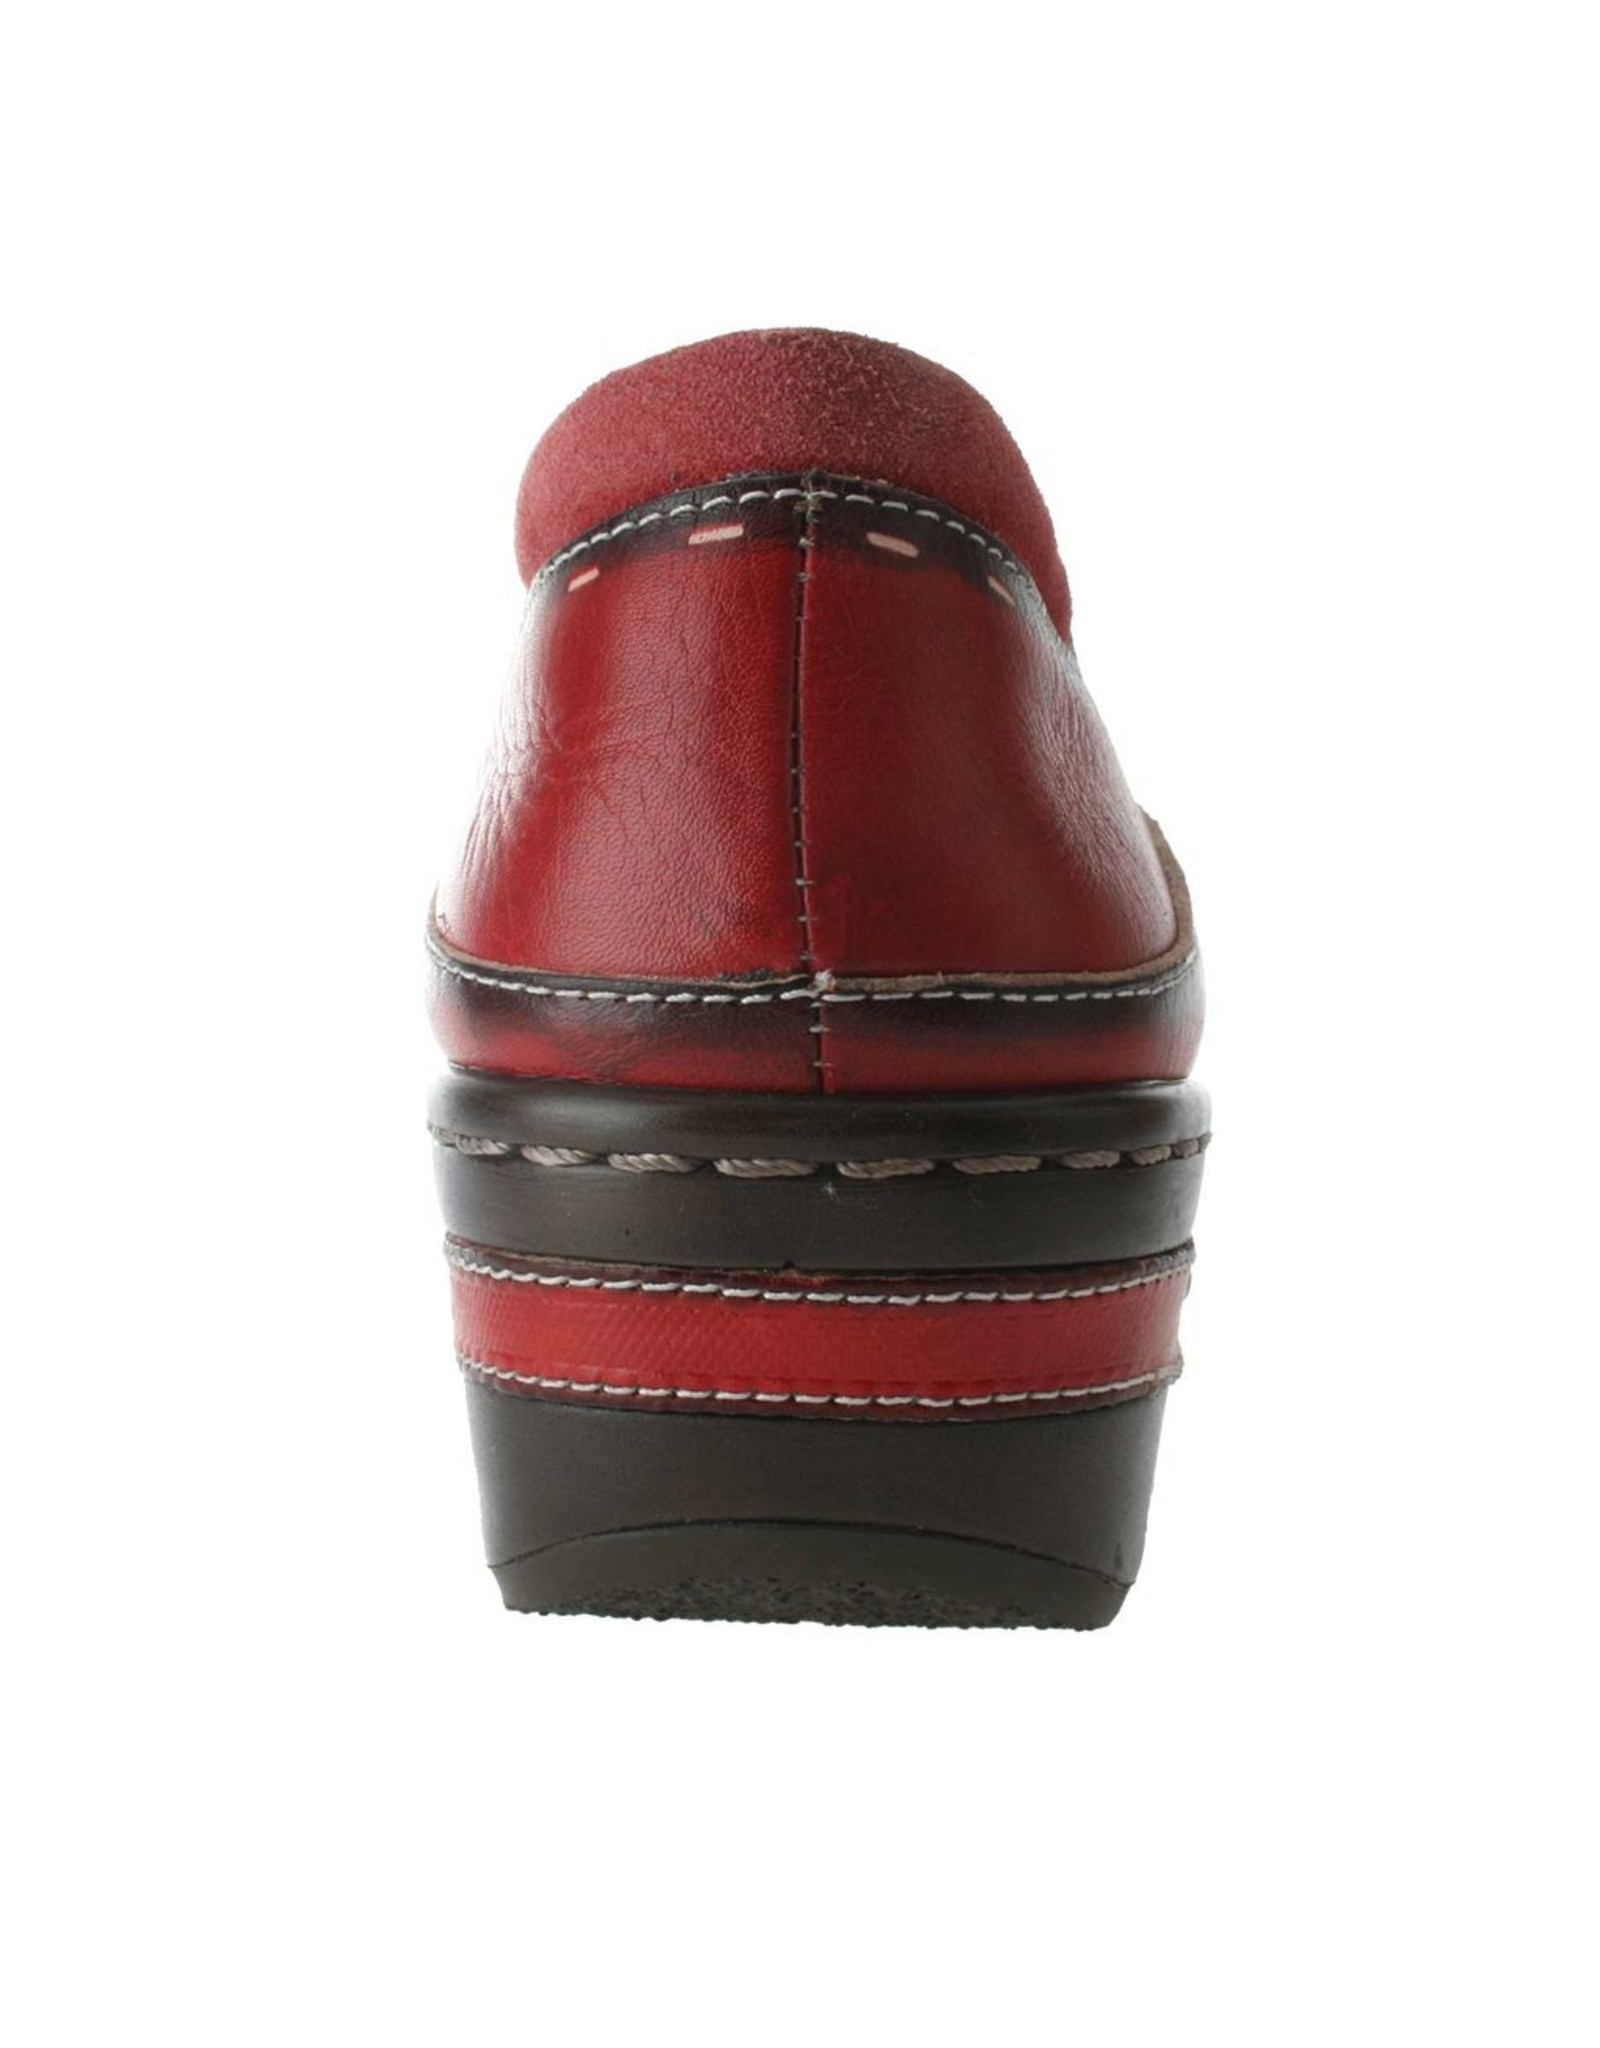 Burbank Red Leather Clog